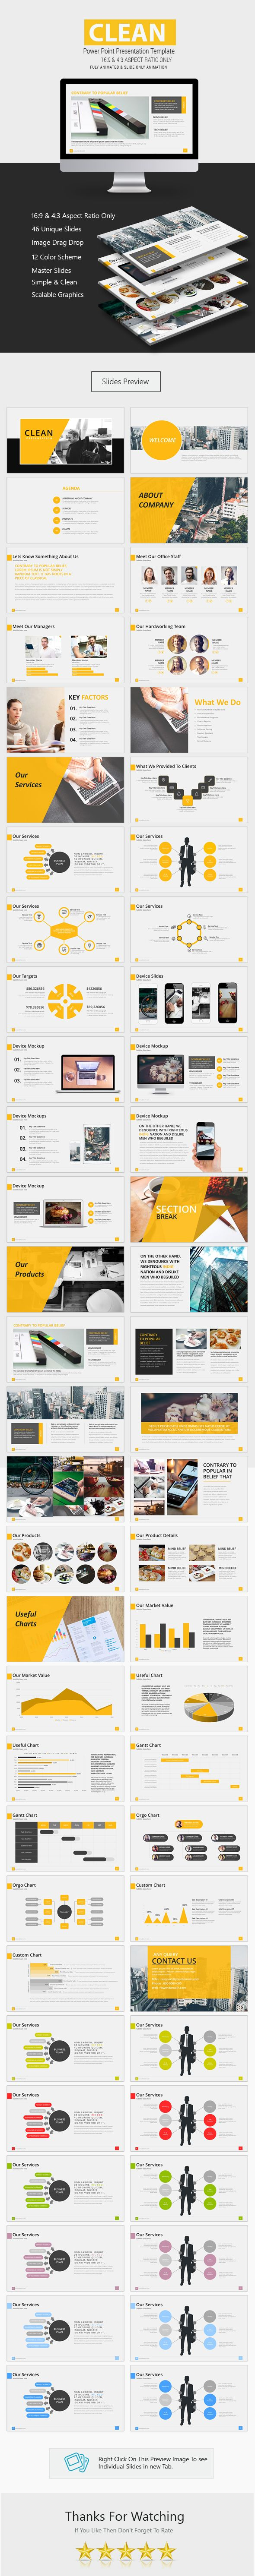 Clean Premium Power Point #Presentation - Business #PowerPoint Templates